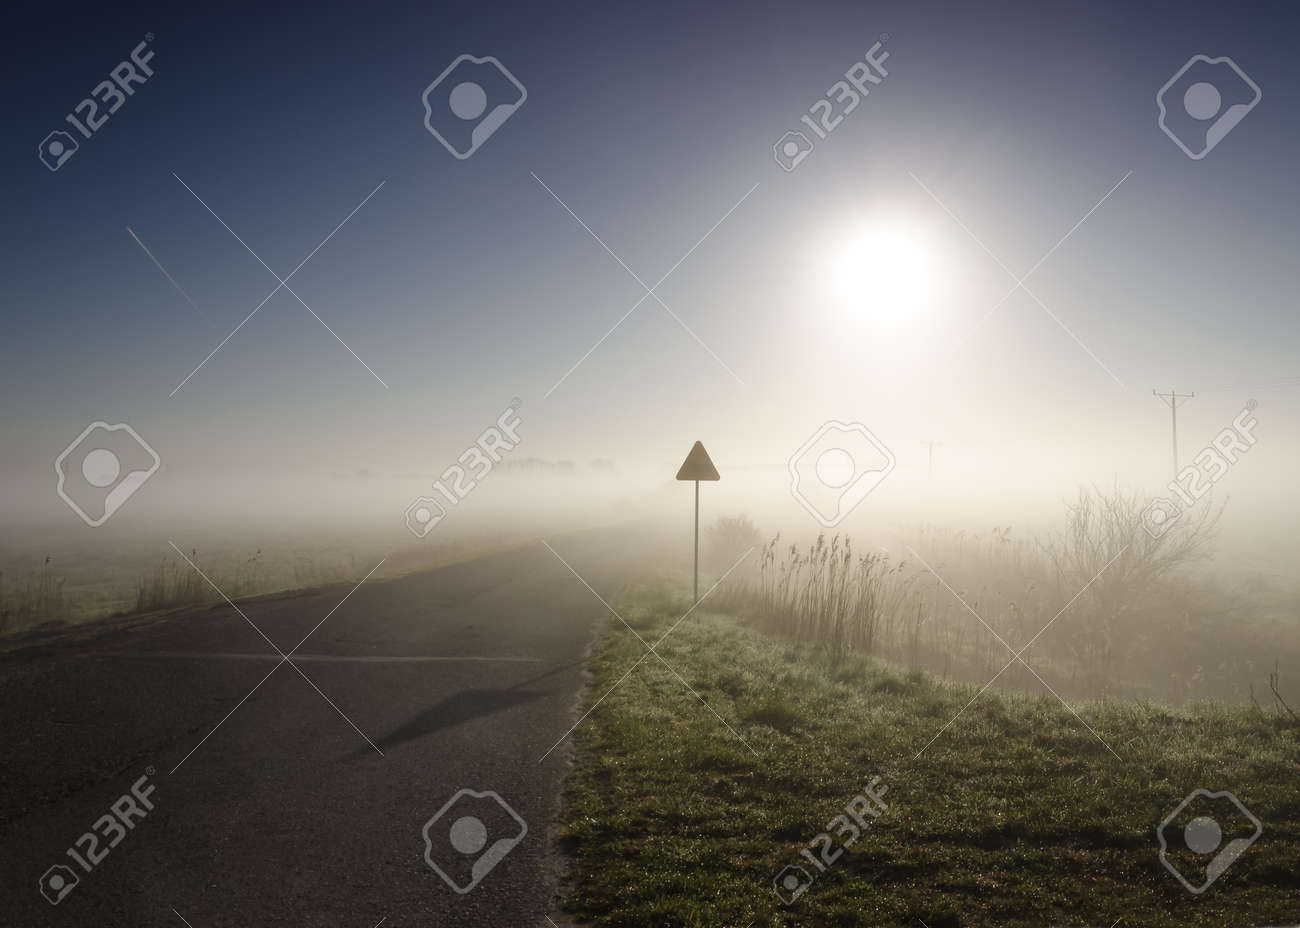 MISTY MORNING - Picturesque weather over the asphalt road - 169540989